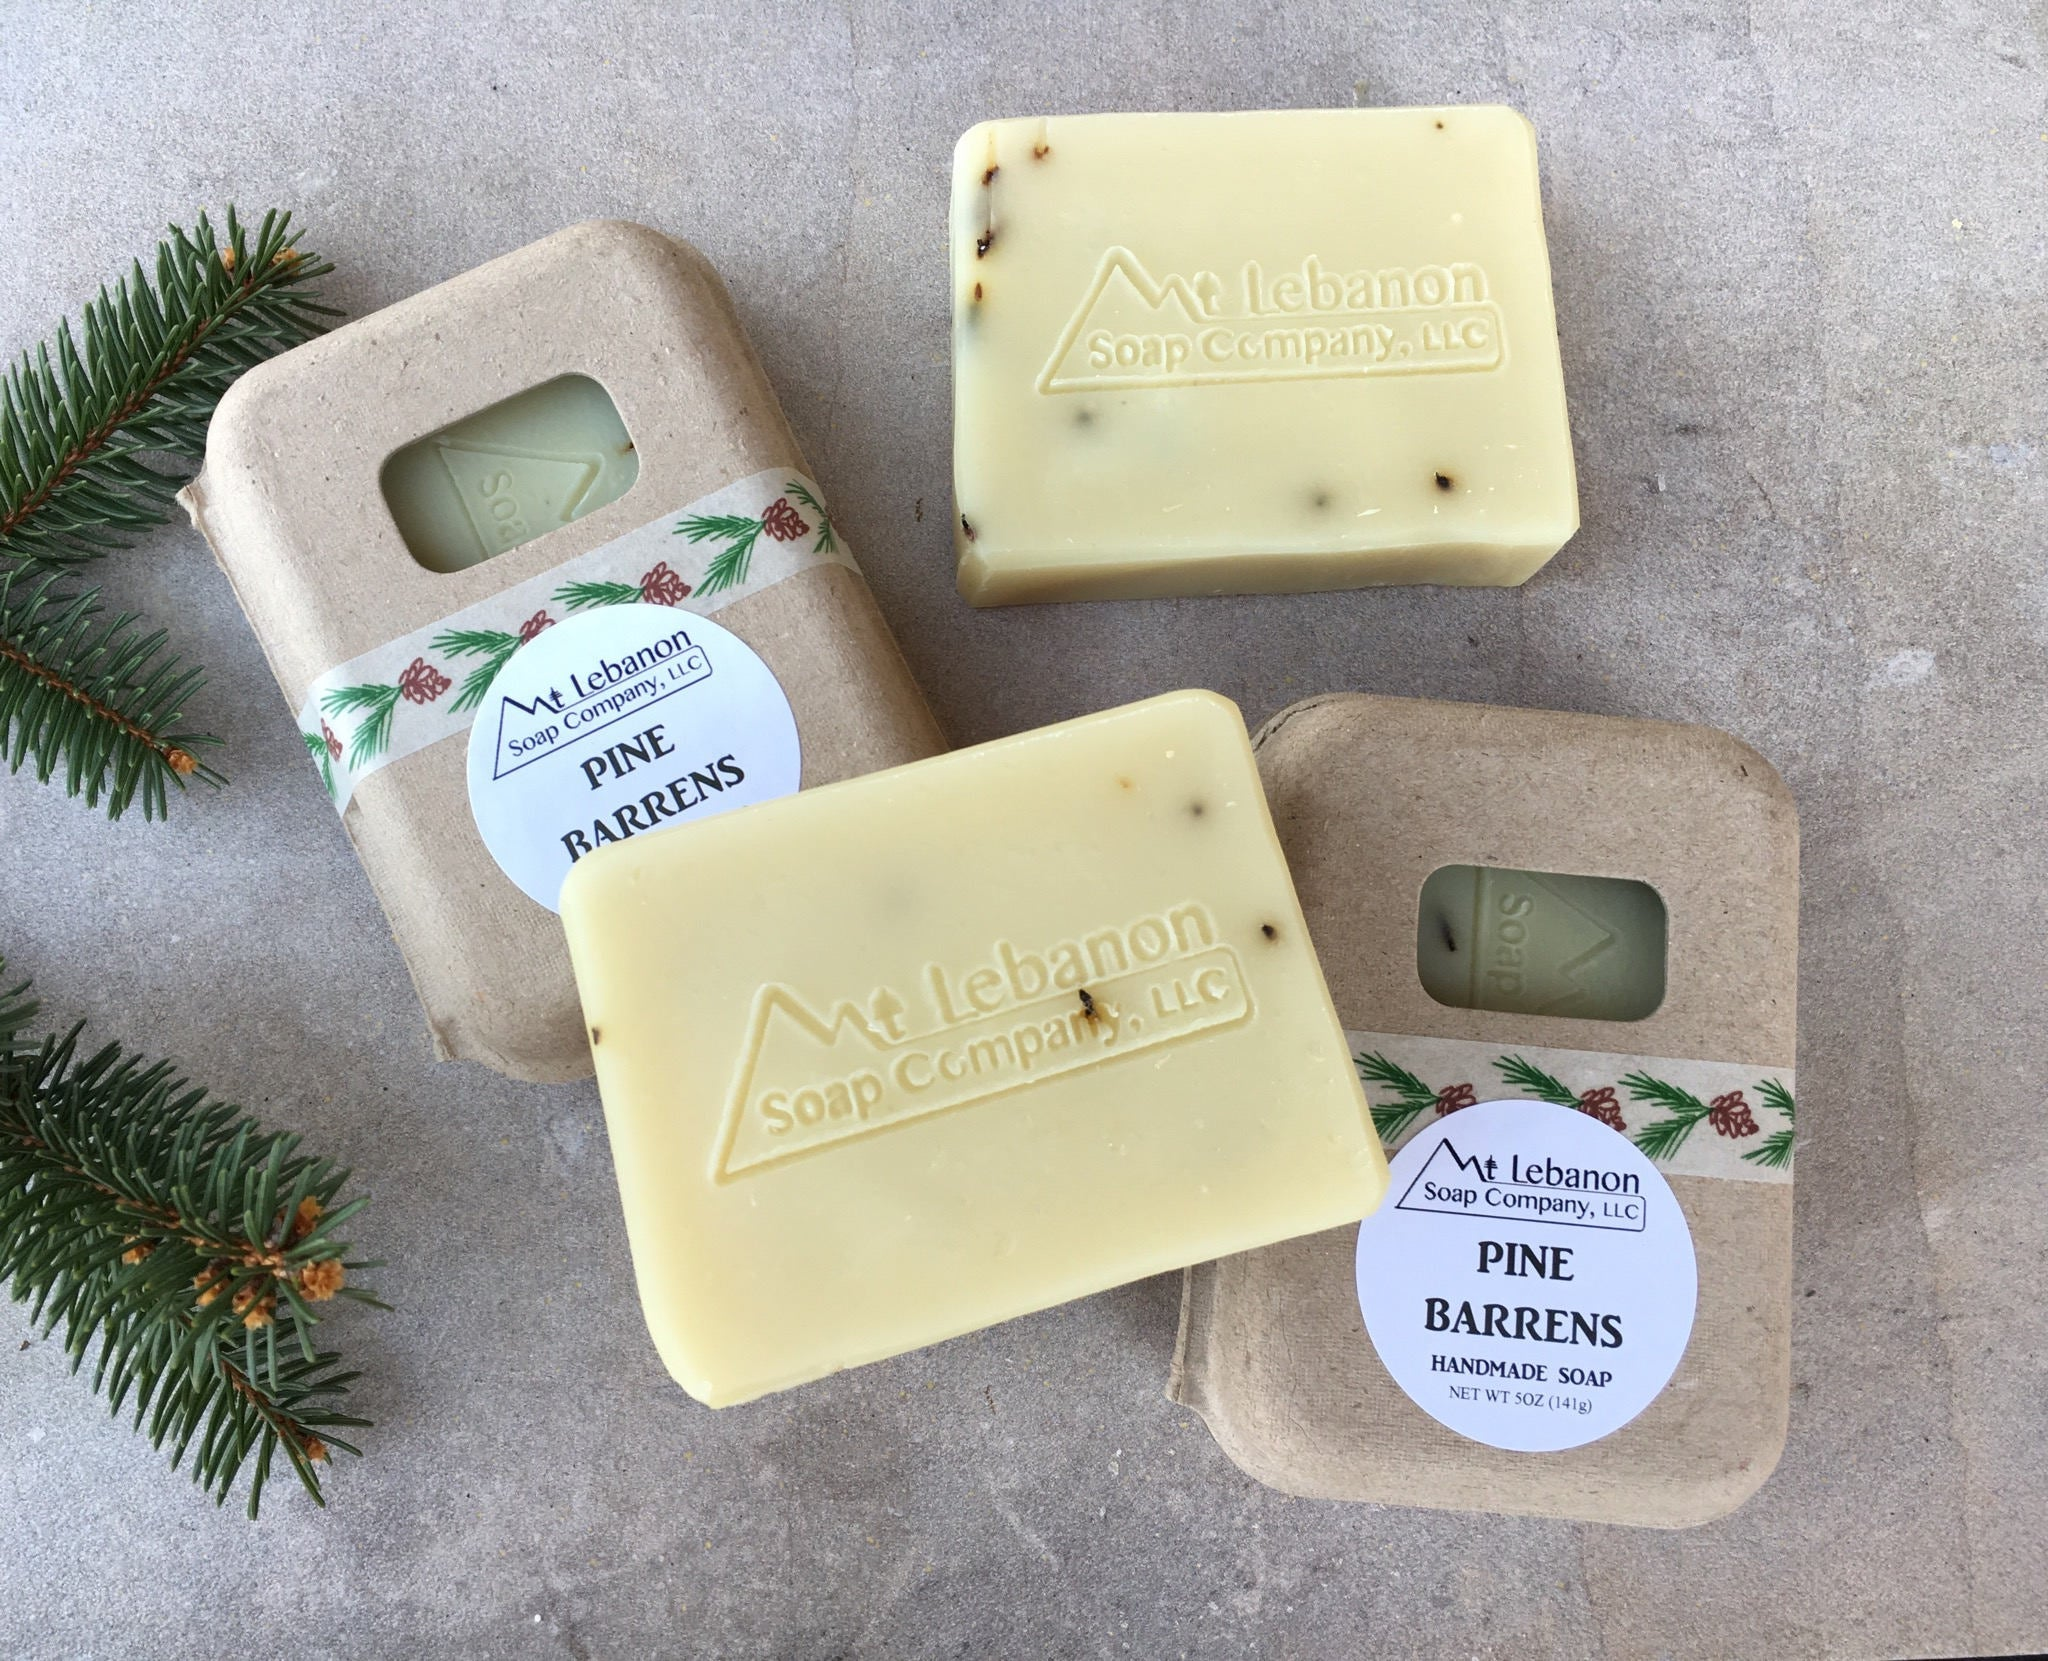 Pine Barrens Handcrafted Soap - NJ Gift for Men